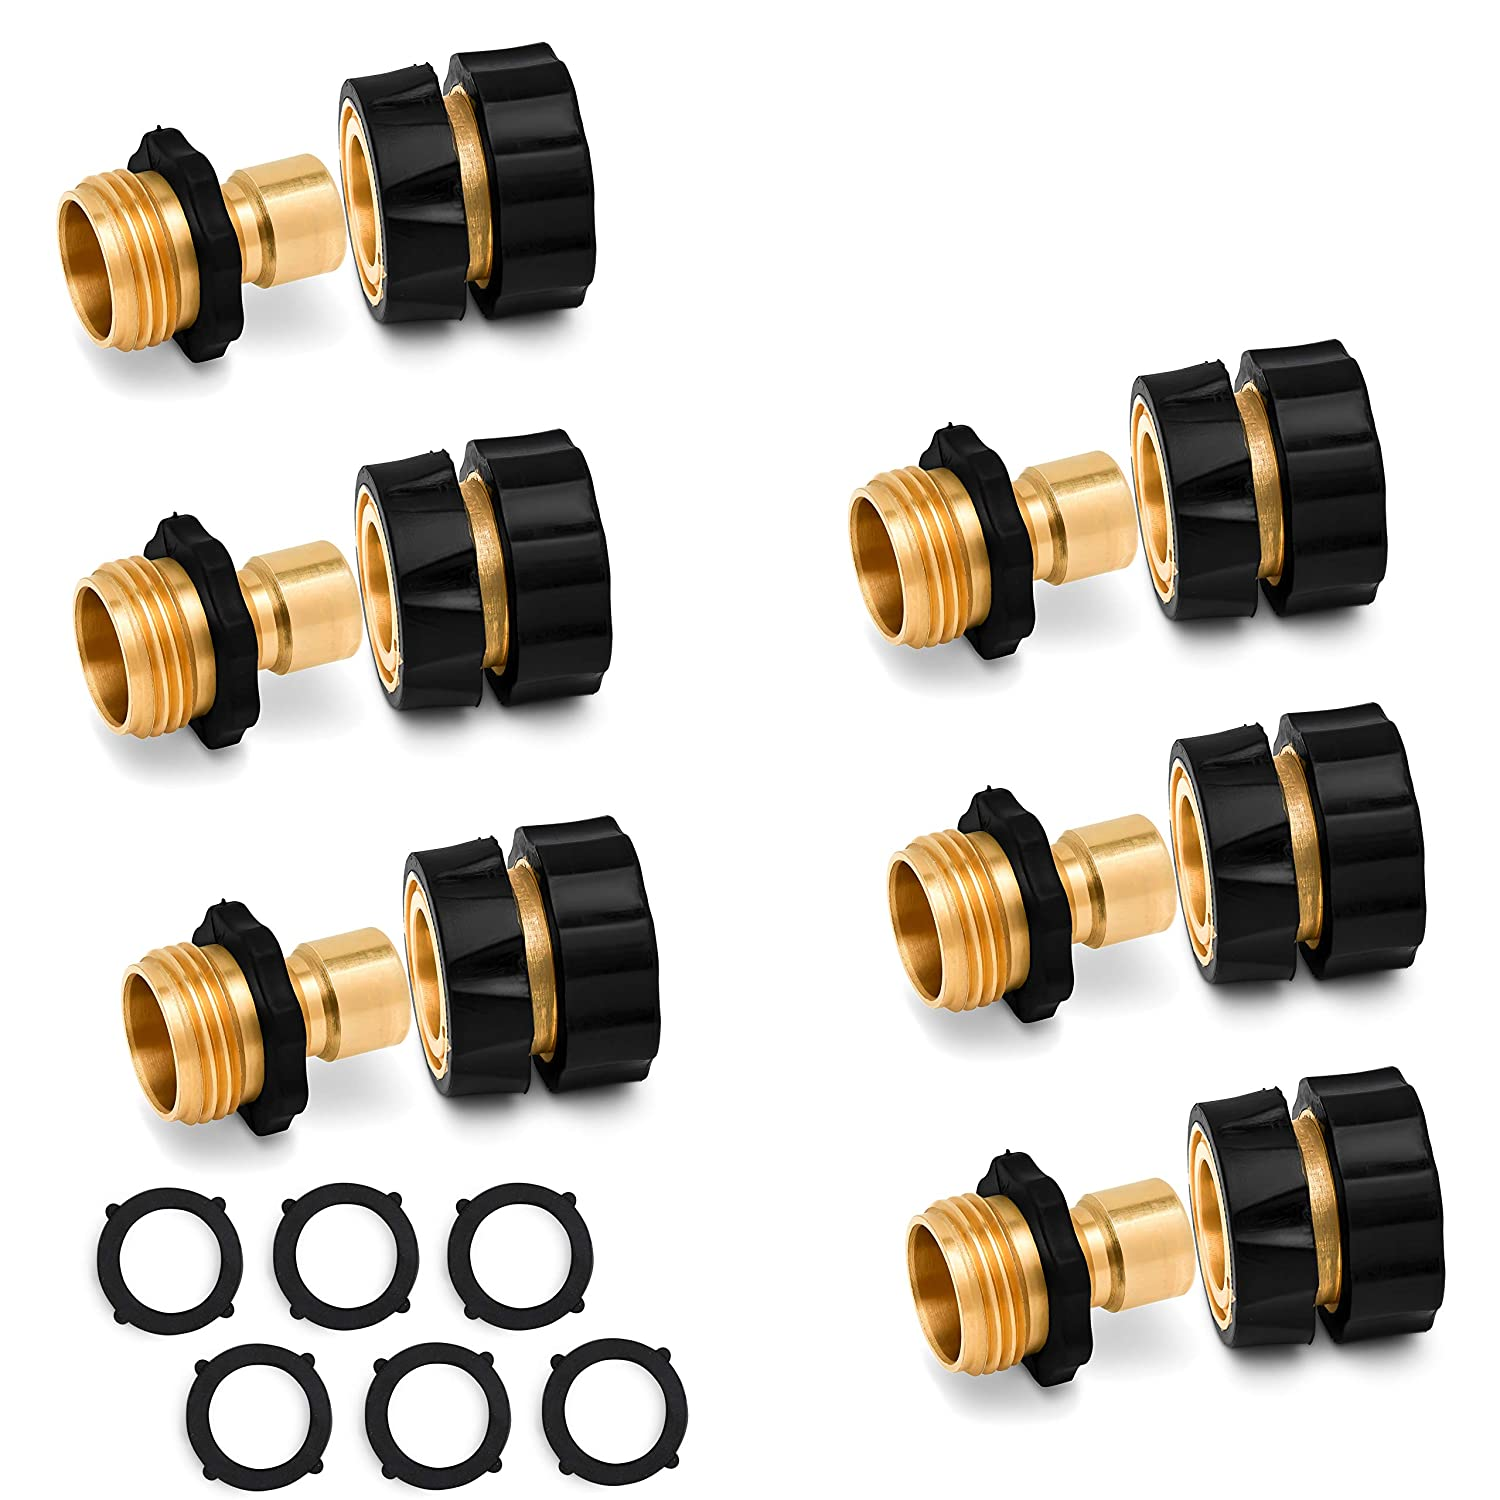 Morvat Brass Quick Connect Hose Connector, Pressure Washer Hose Connect Set, Easily Add Attachments to Garden Hose, Garden Hose Nozzle, 6 Male Connects and 6 Female Connects Plus 6 Extra Washers